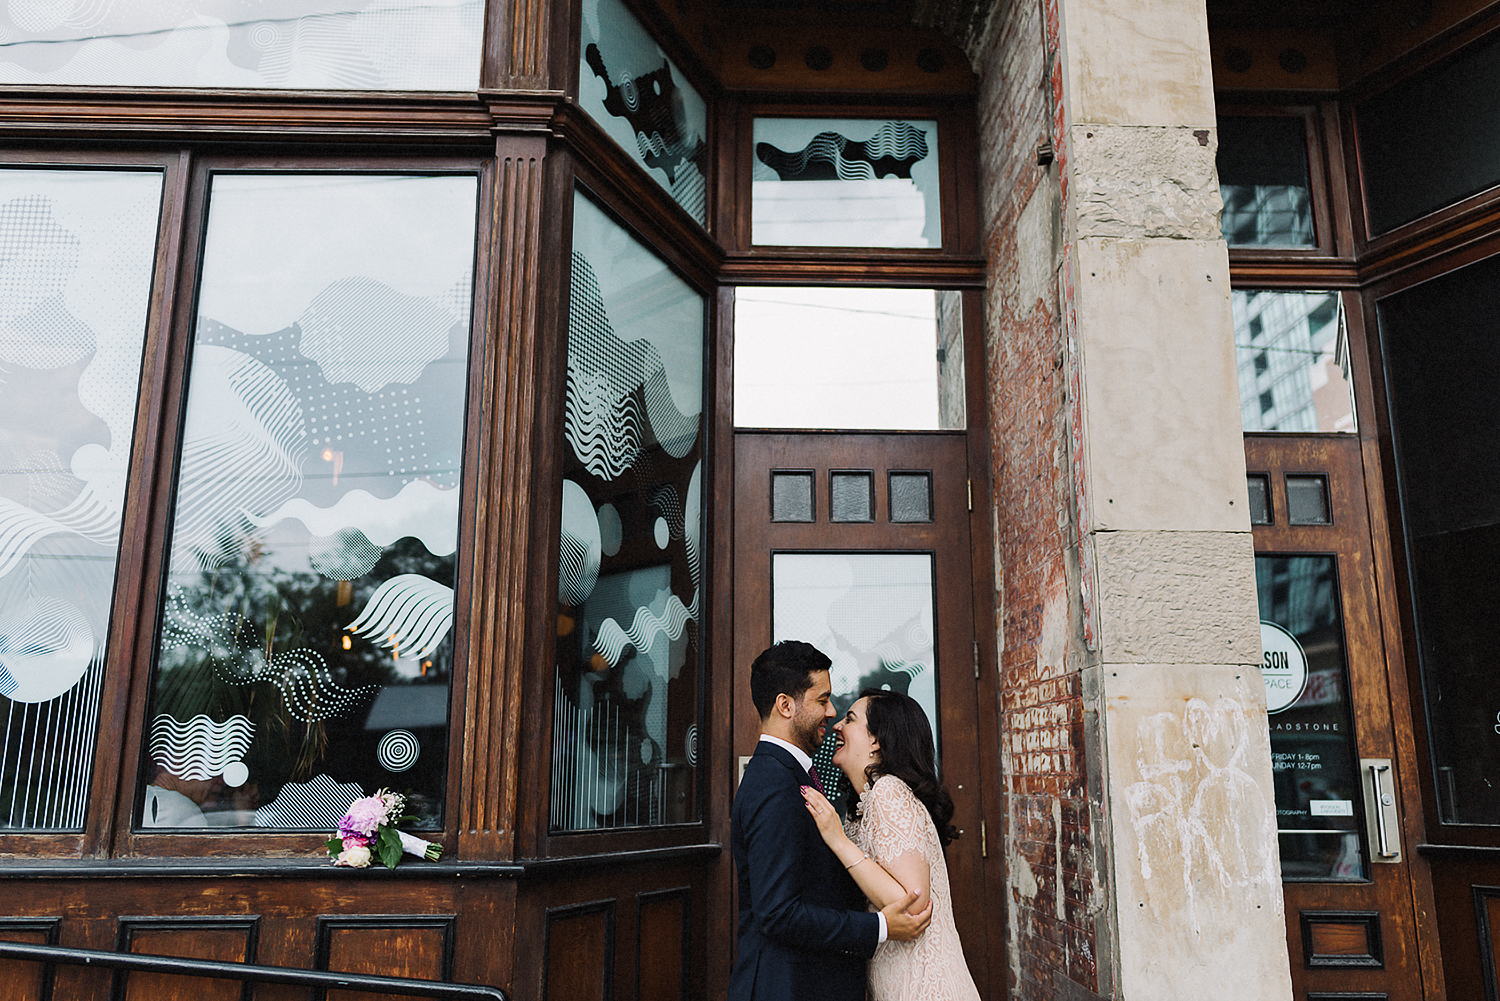 Minimalist-Wedding-at-Gladstone-Hotel-Best-Wedding-Photogrpahers-in-Toronto-with-Documentary-and-Editorial-Style-Ryanne-Hollies-Floral-Bouquet-and-Wedding-Dress-Detail-Portraits-along-queent-street-west-Groom-Portrait-candid-laughing.jpg